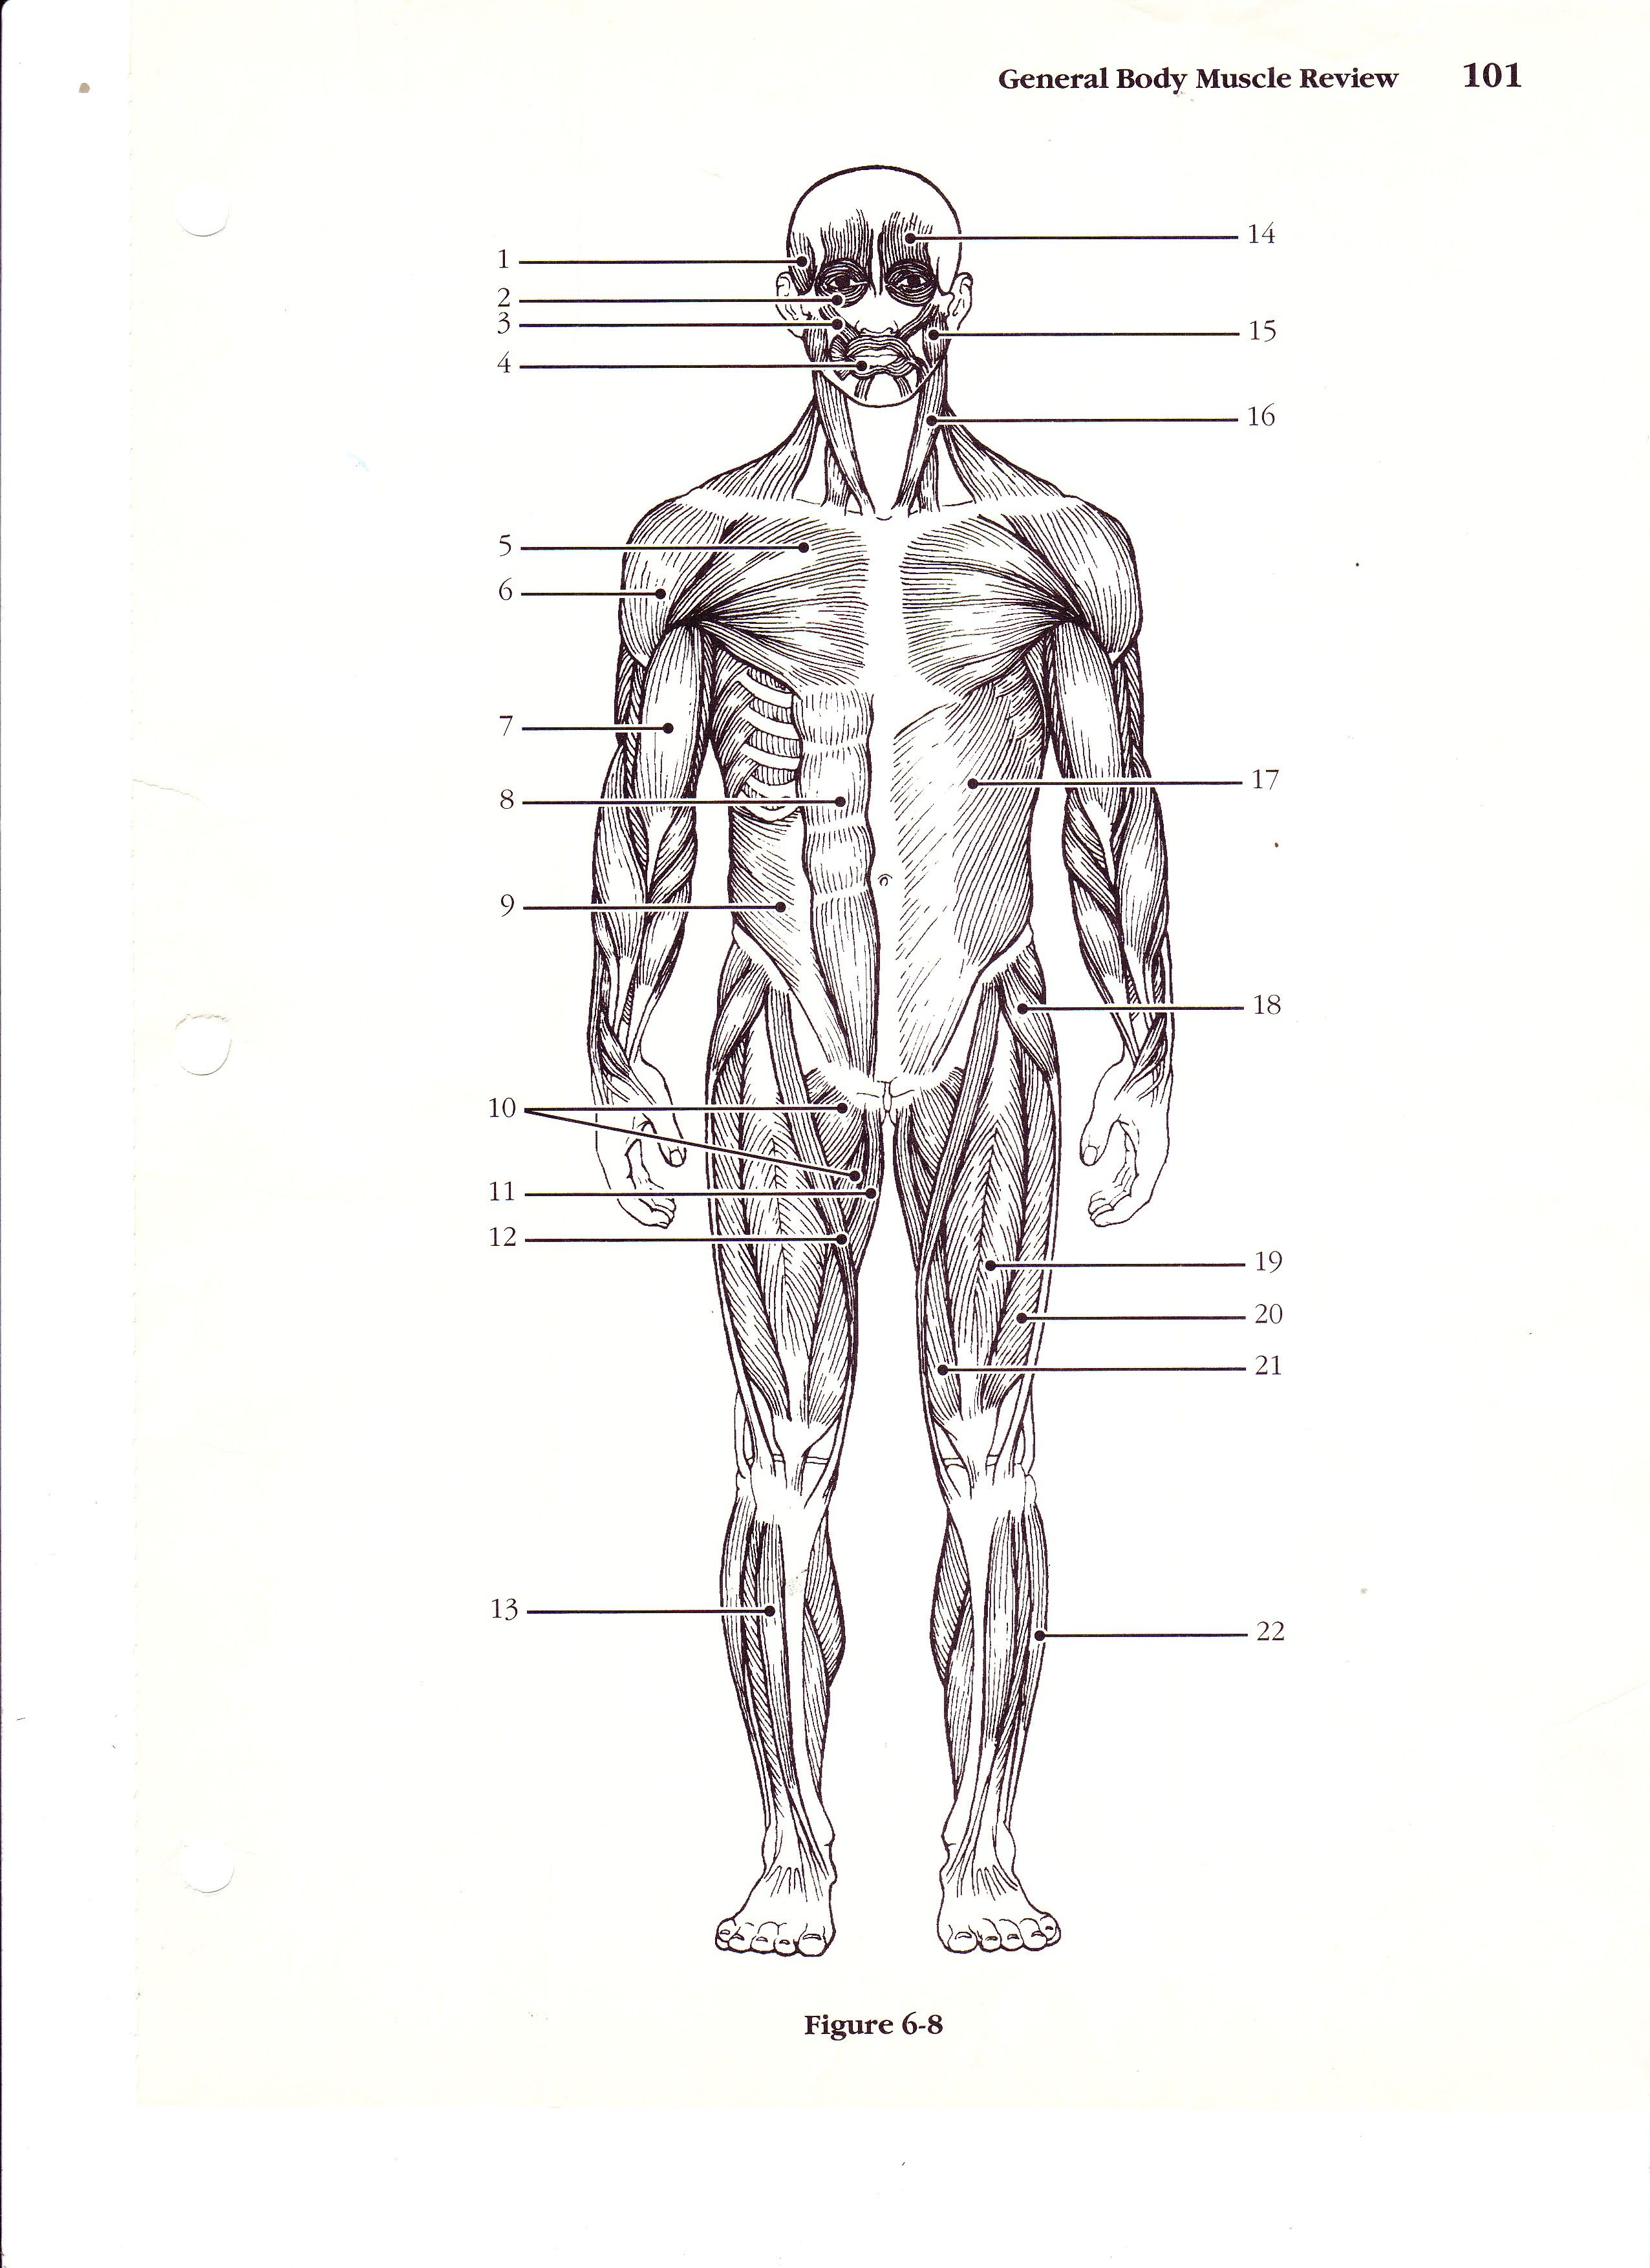 Muscle Diagrams To Label Localprivate Muscles